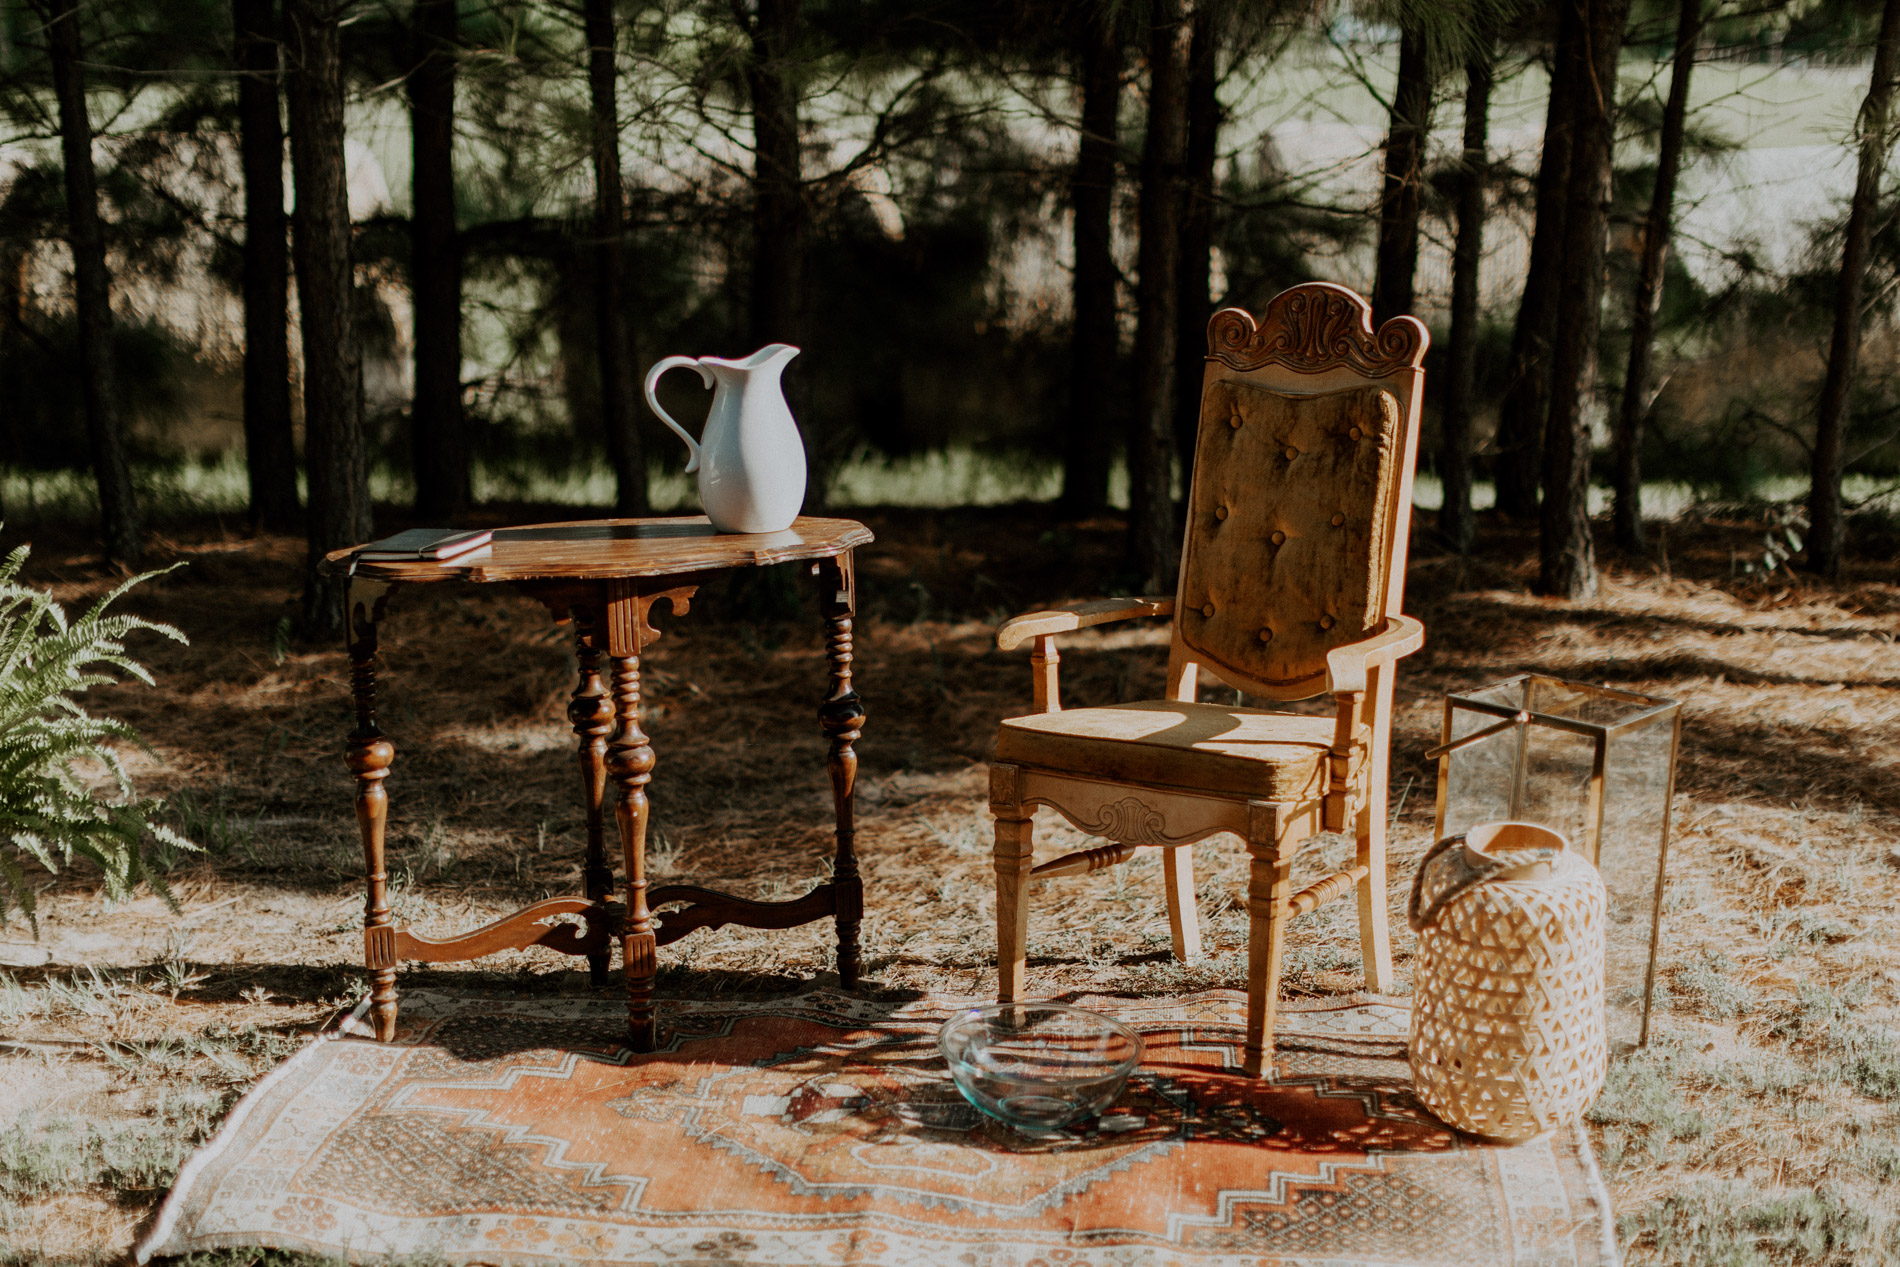 Vintage chair and table used for washing feet in wedding ceremony